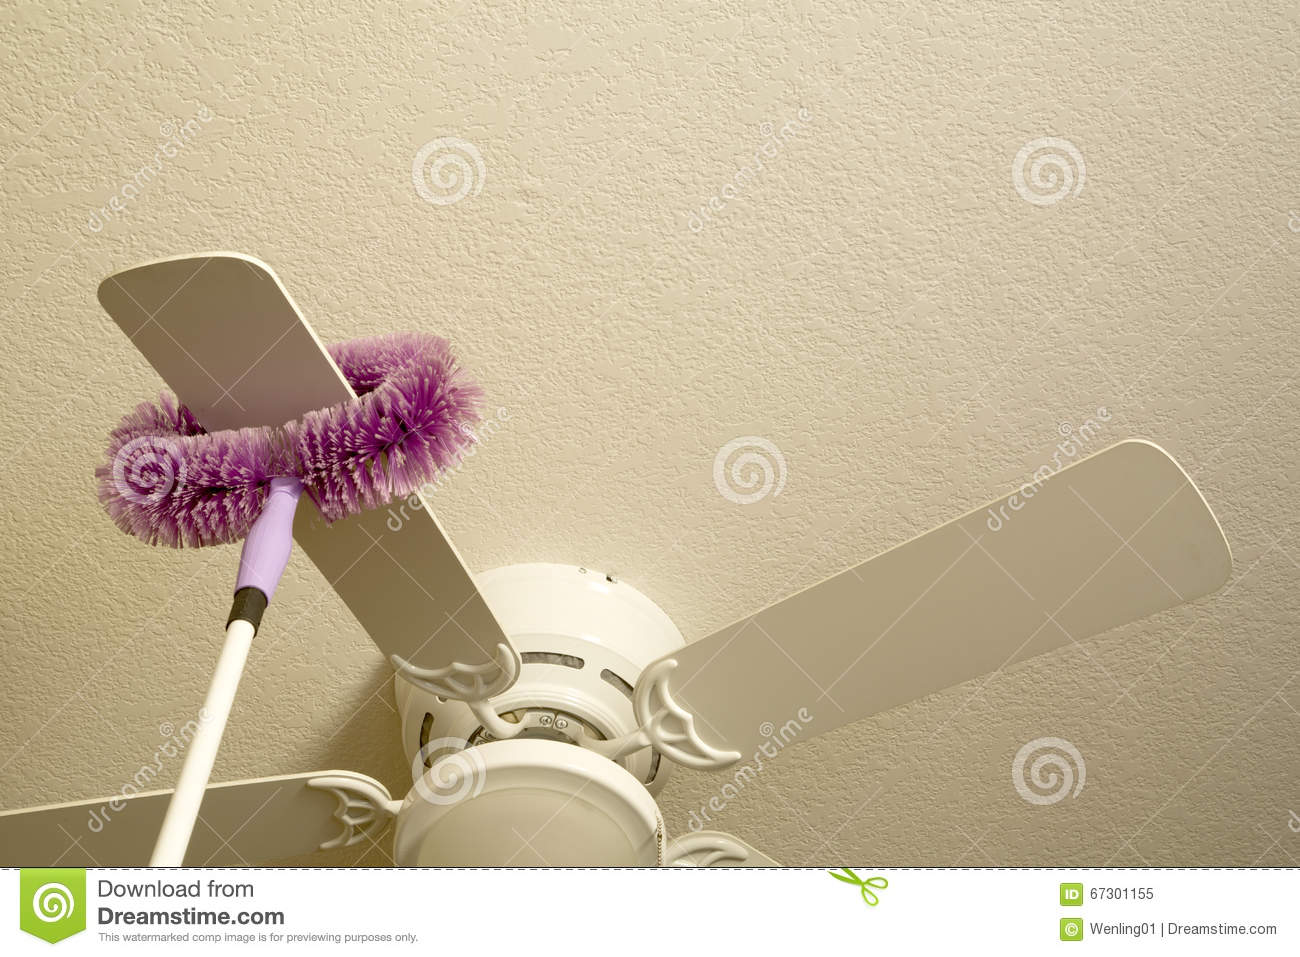 Cleaning ceiling fan stock images download 26 photos cleaning ceiling fan in the house royalty free stock photo aloadofball Image collections